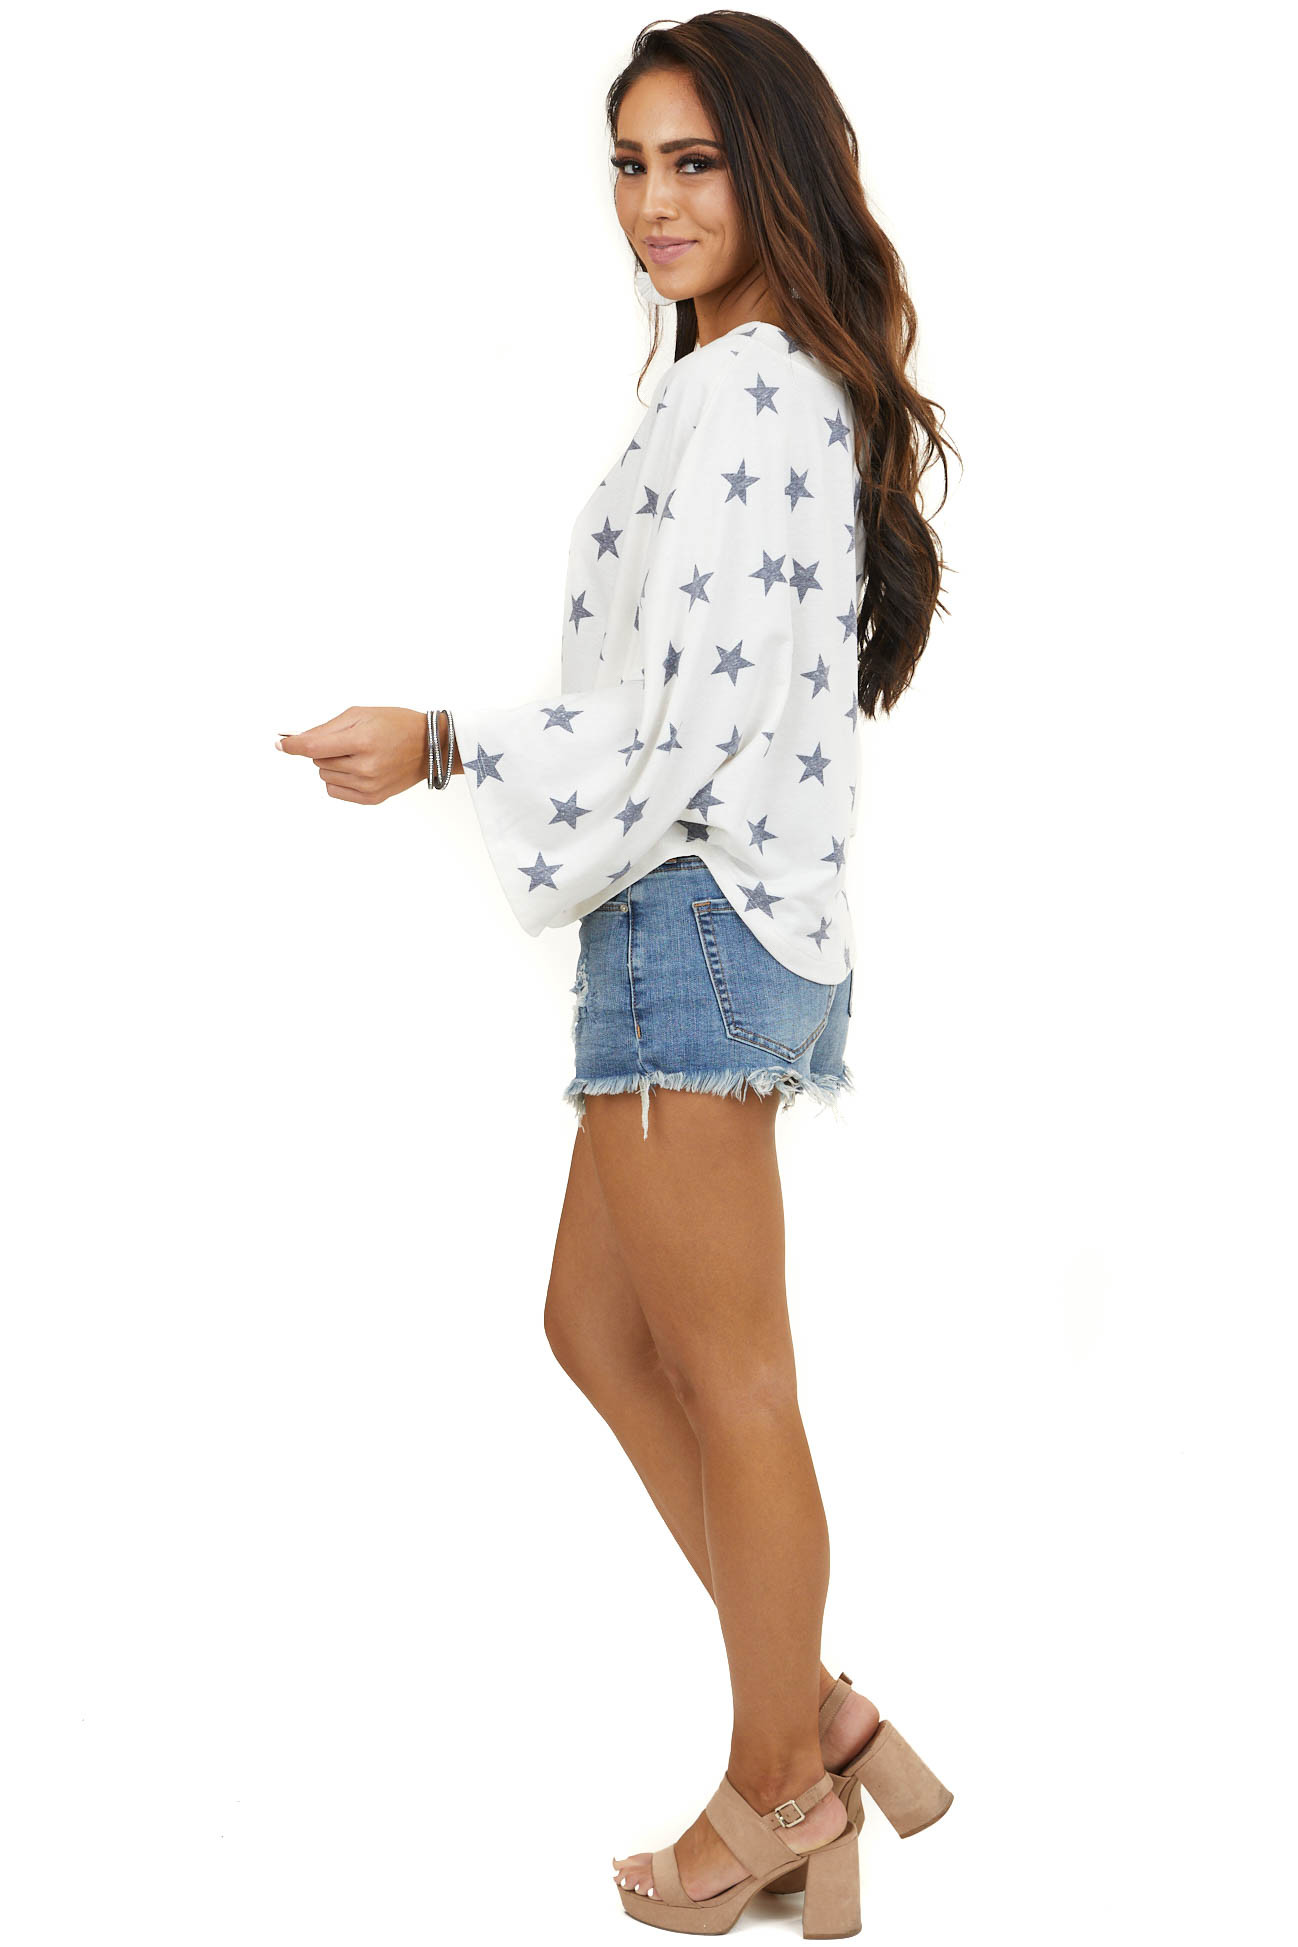 Ivory 3/4 Sleeve Knit Top with Faded Navy Star Print